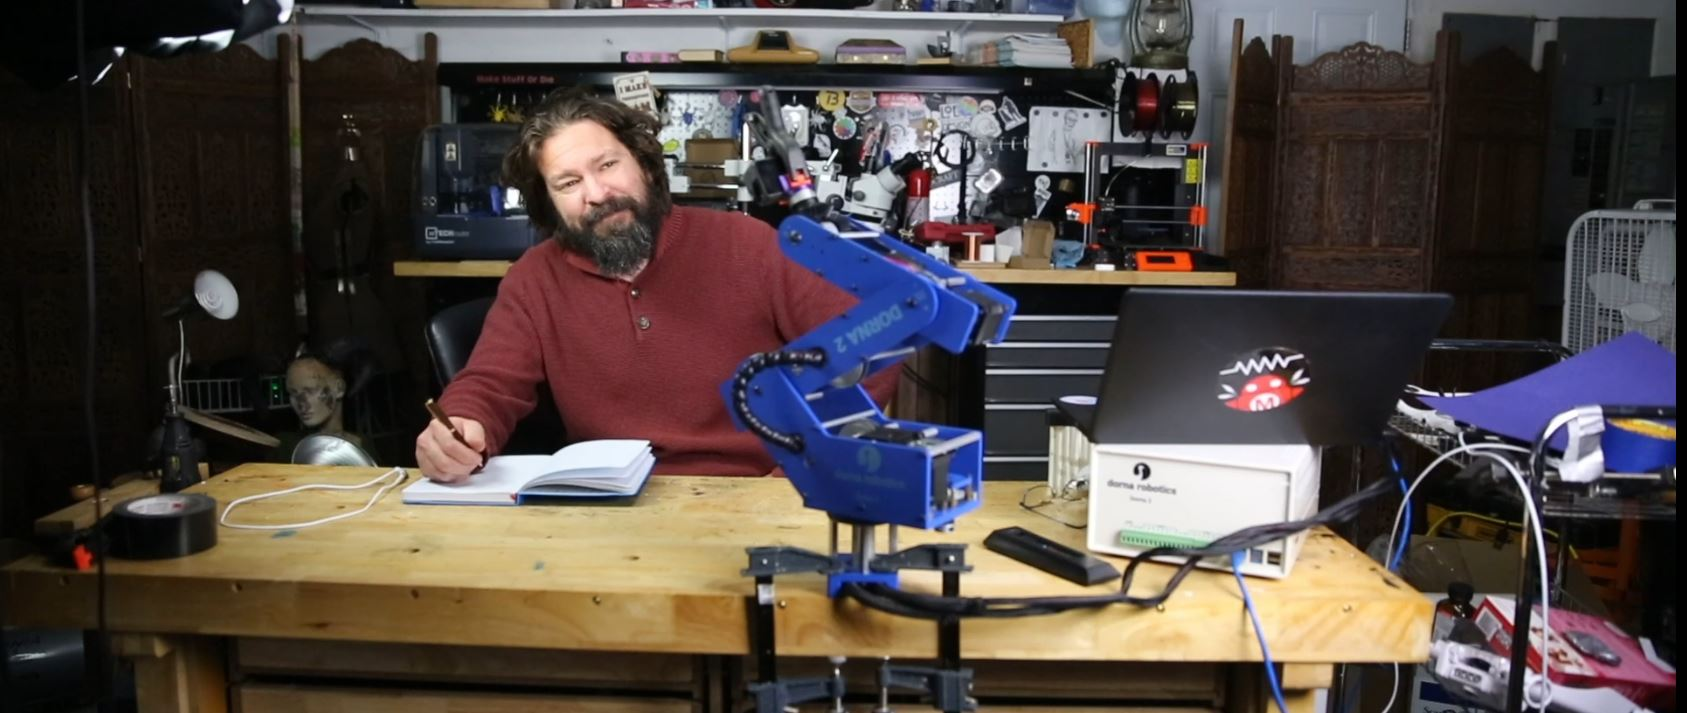 What Would You Do With A Robot Arm On Your Workbench?